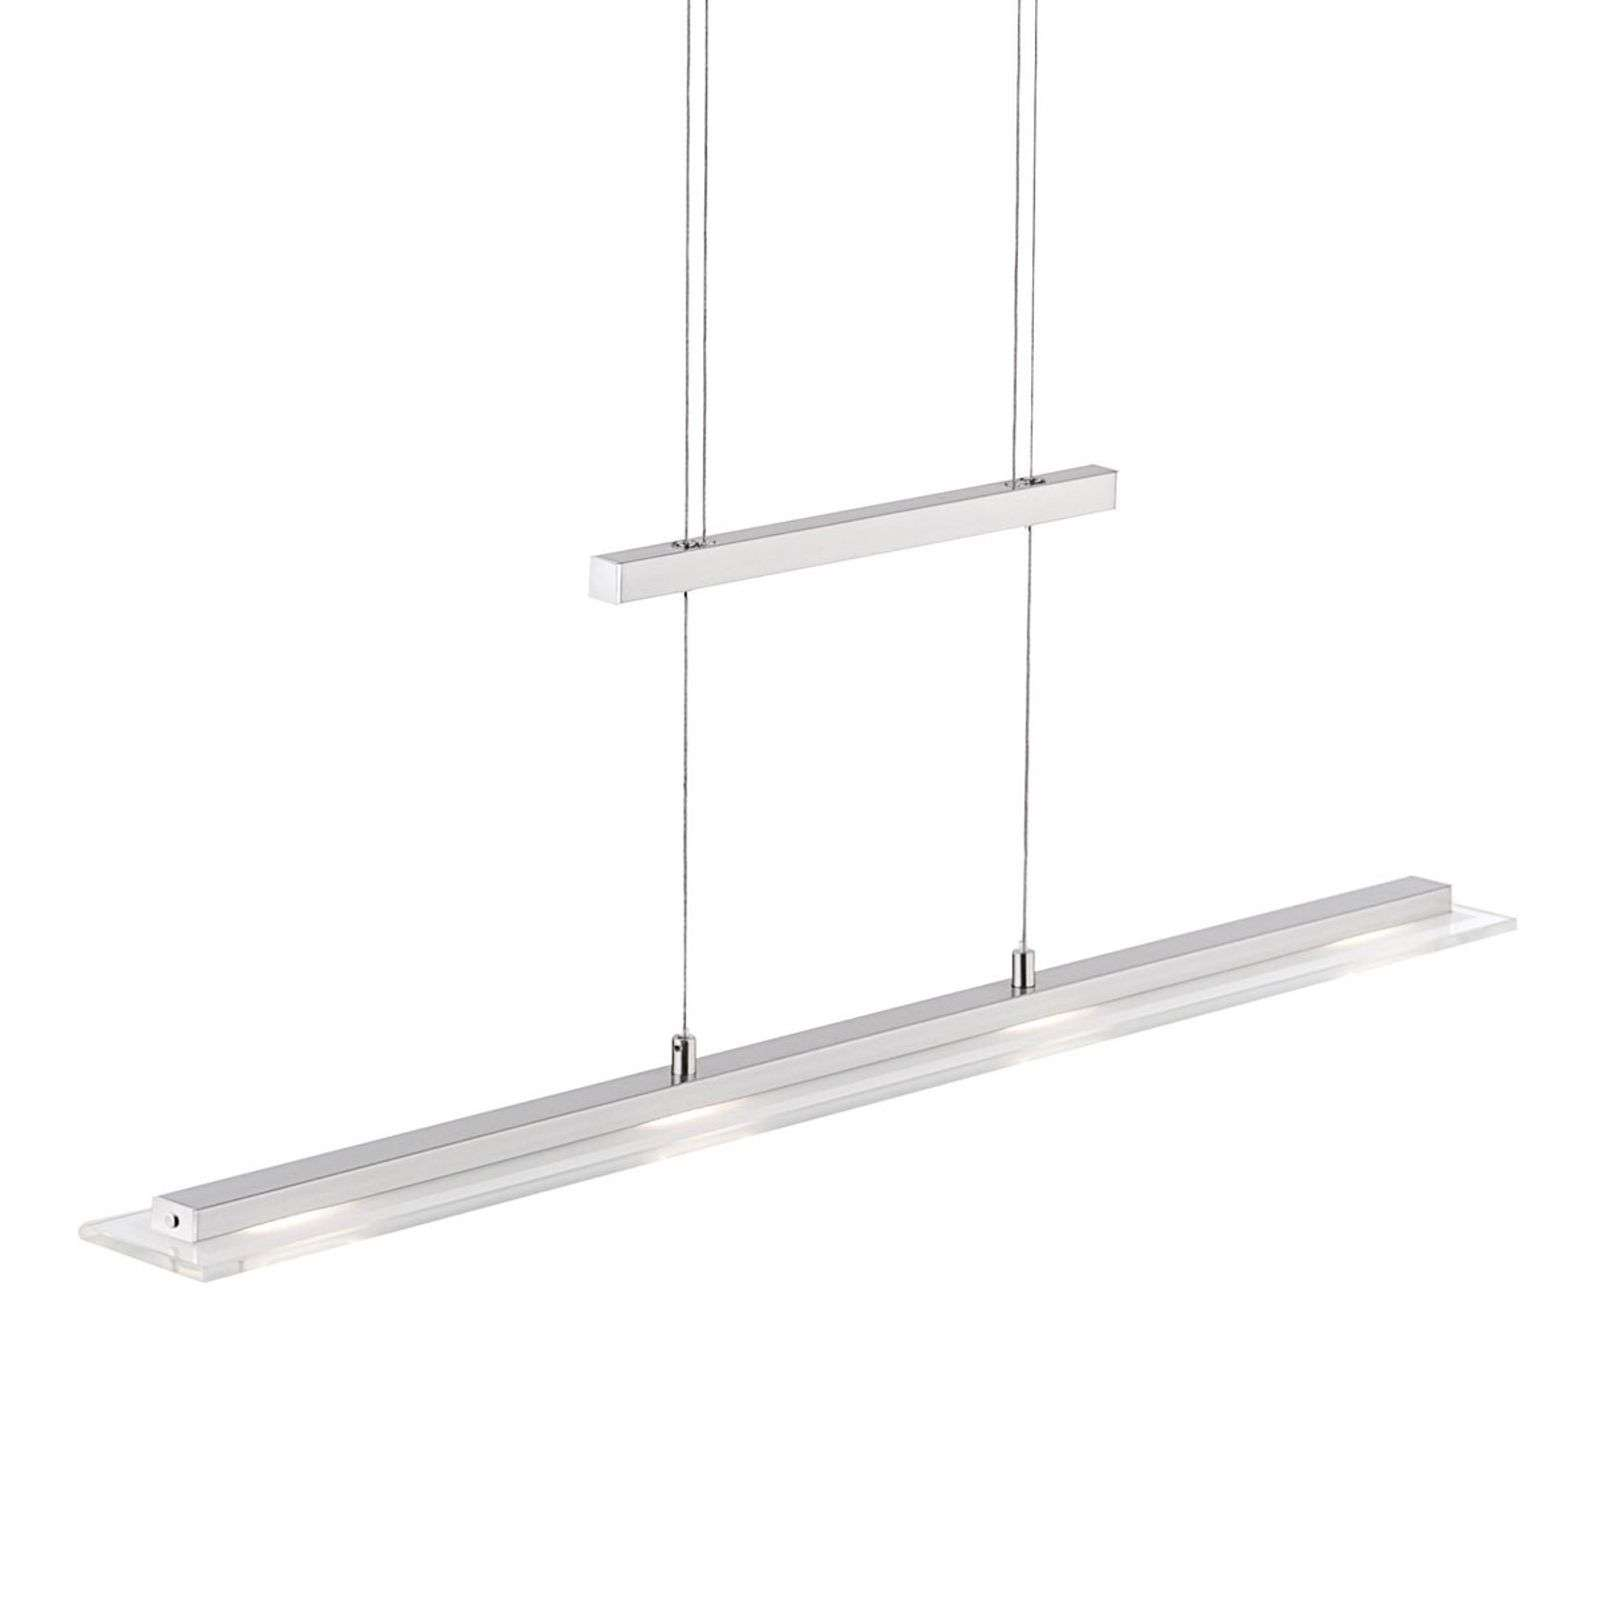 Lampada LED Tenso tunable white + dimmer 64cm